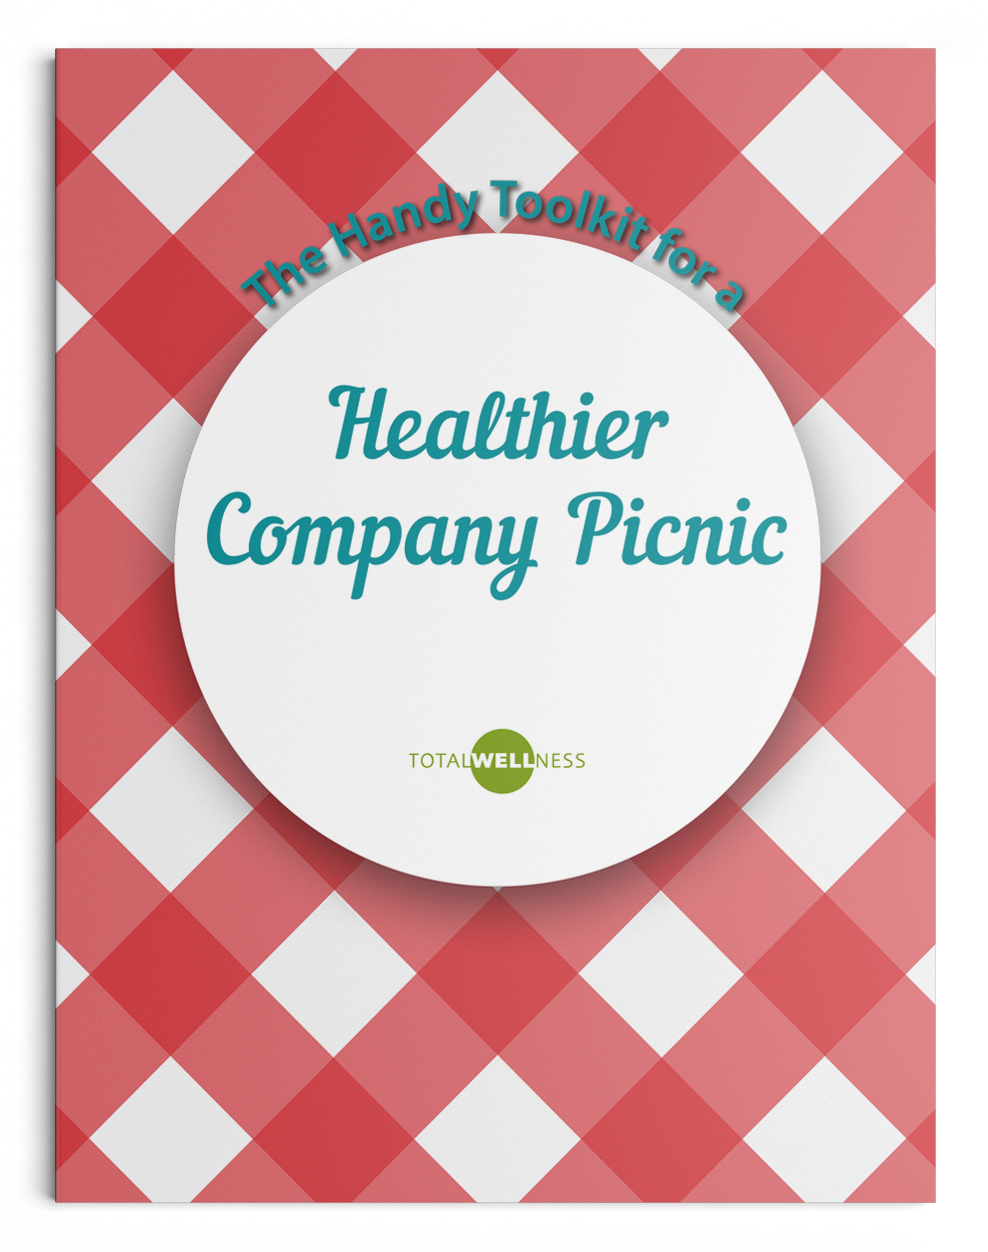 PicnicCover.png